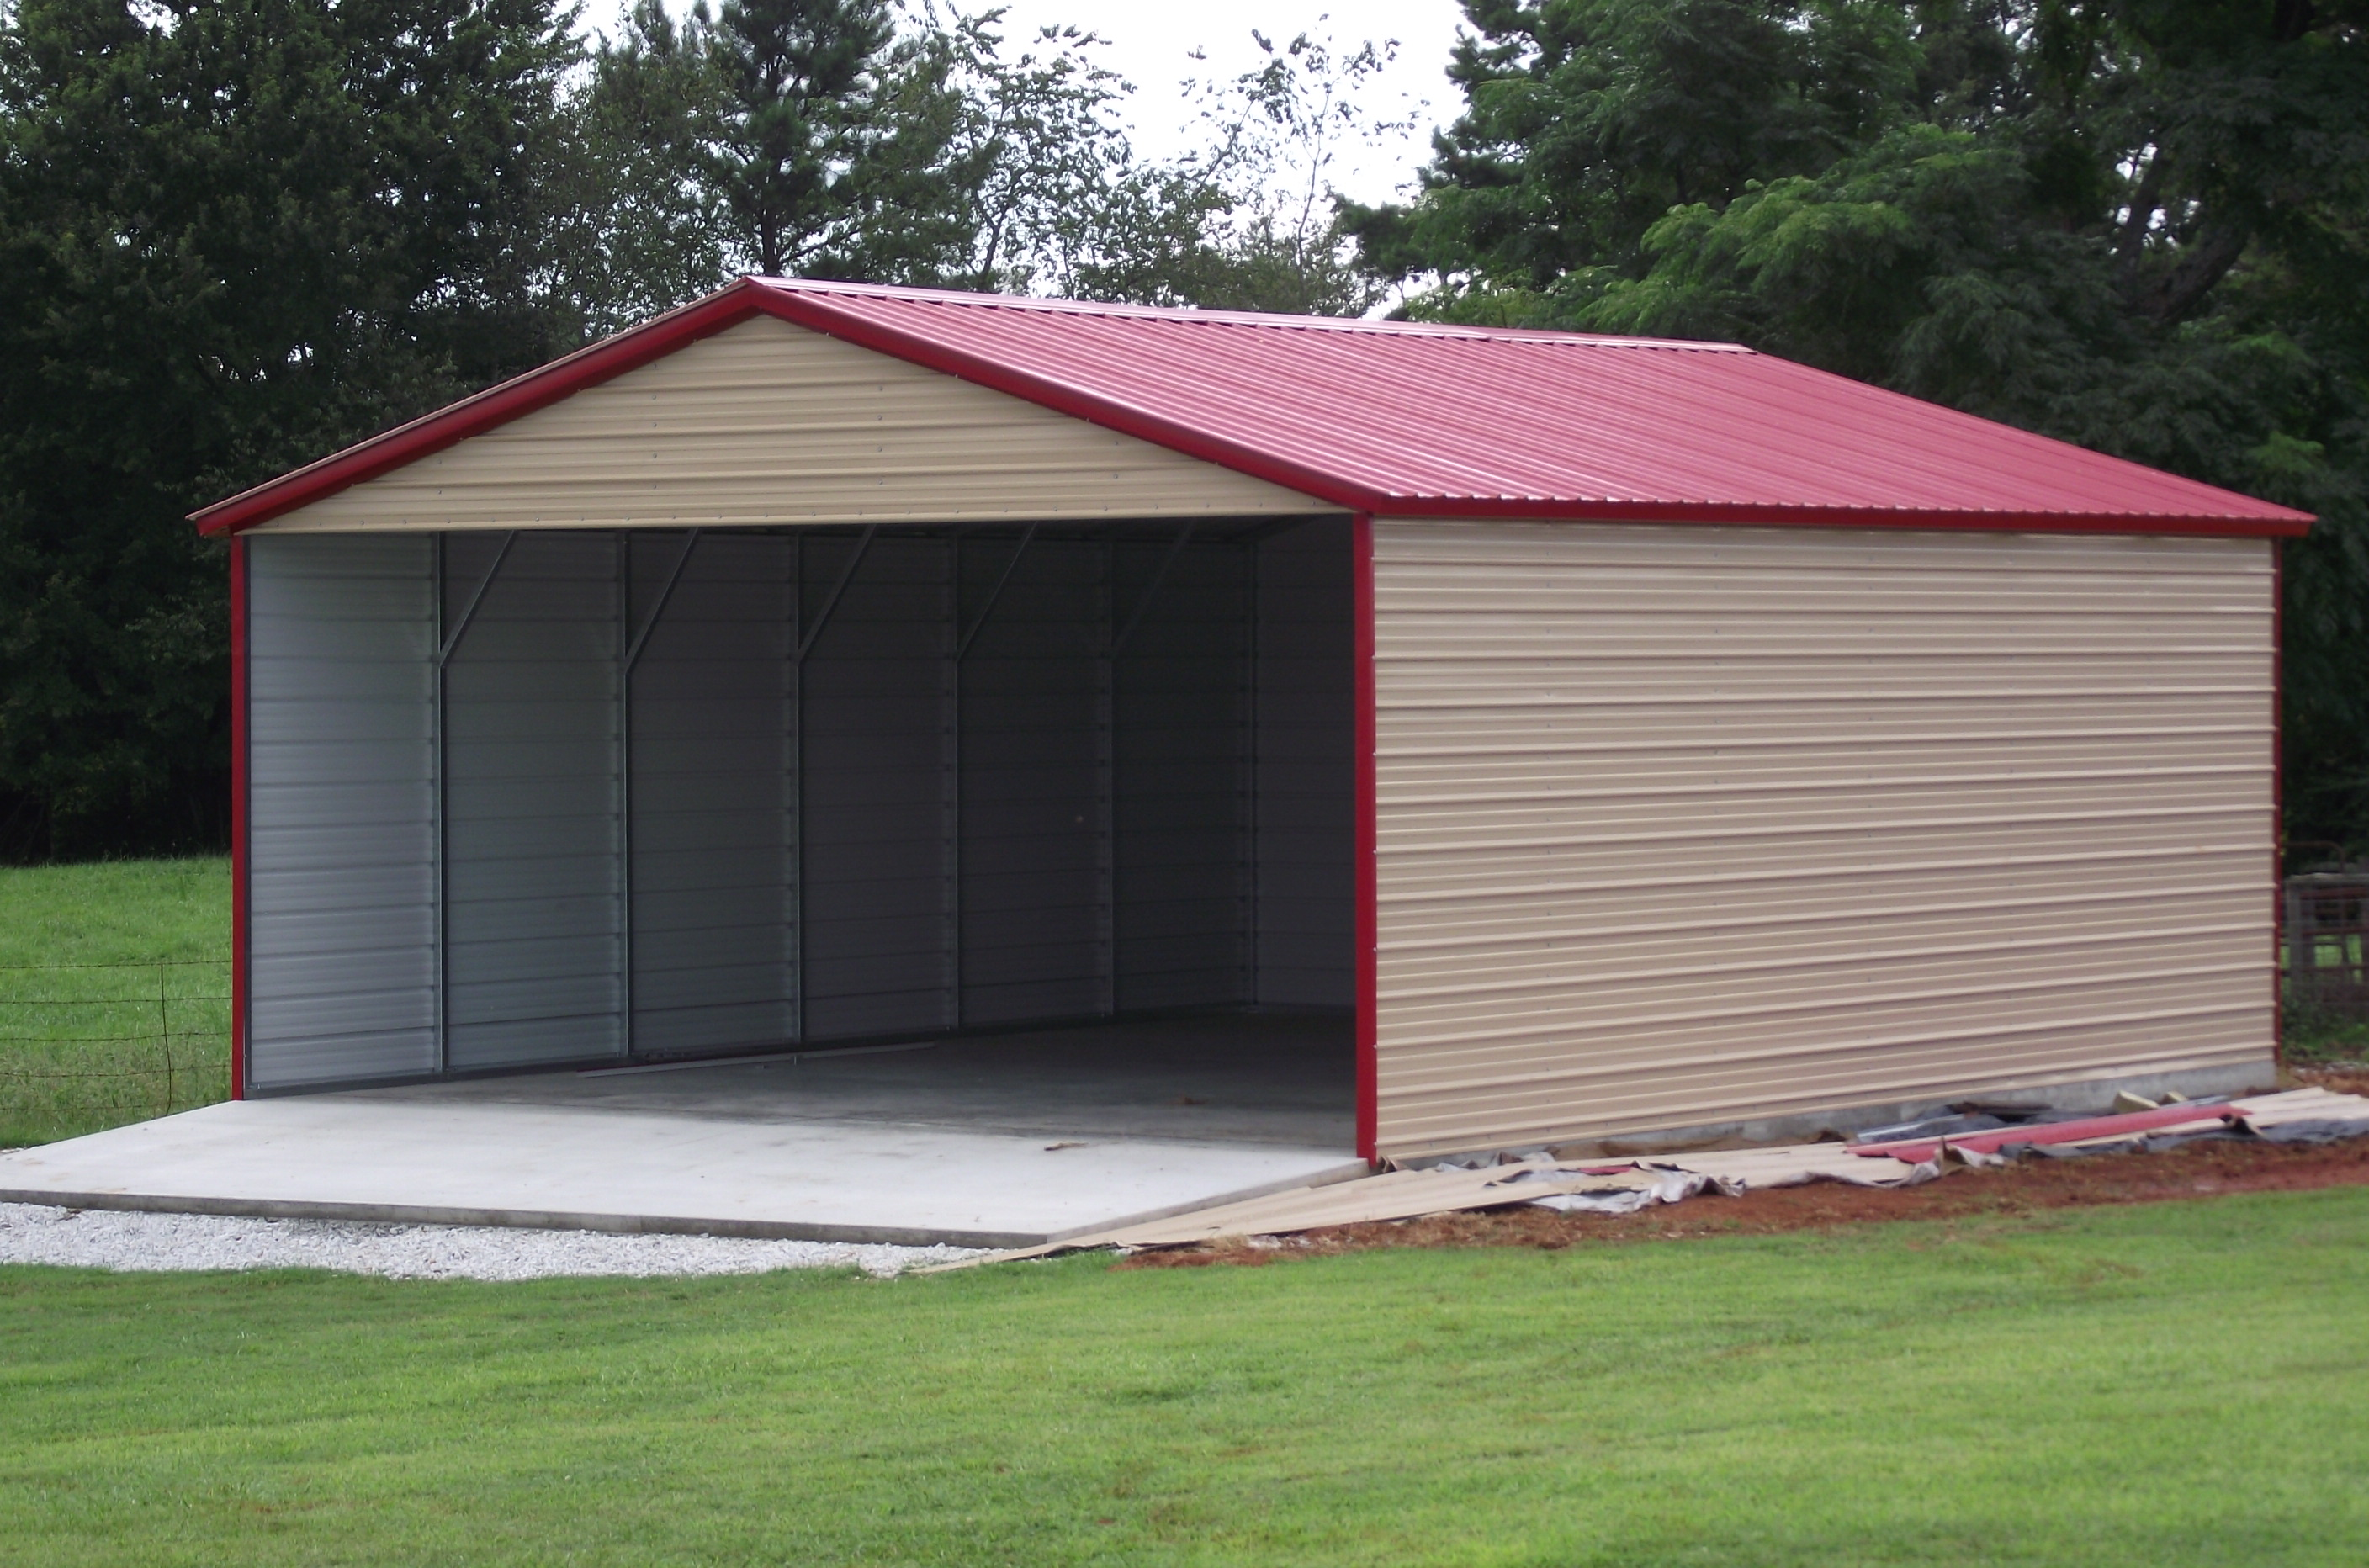 Carports arizona az metal carports arizona az 3 car metal garage kits